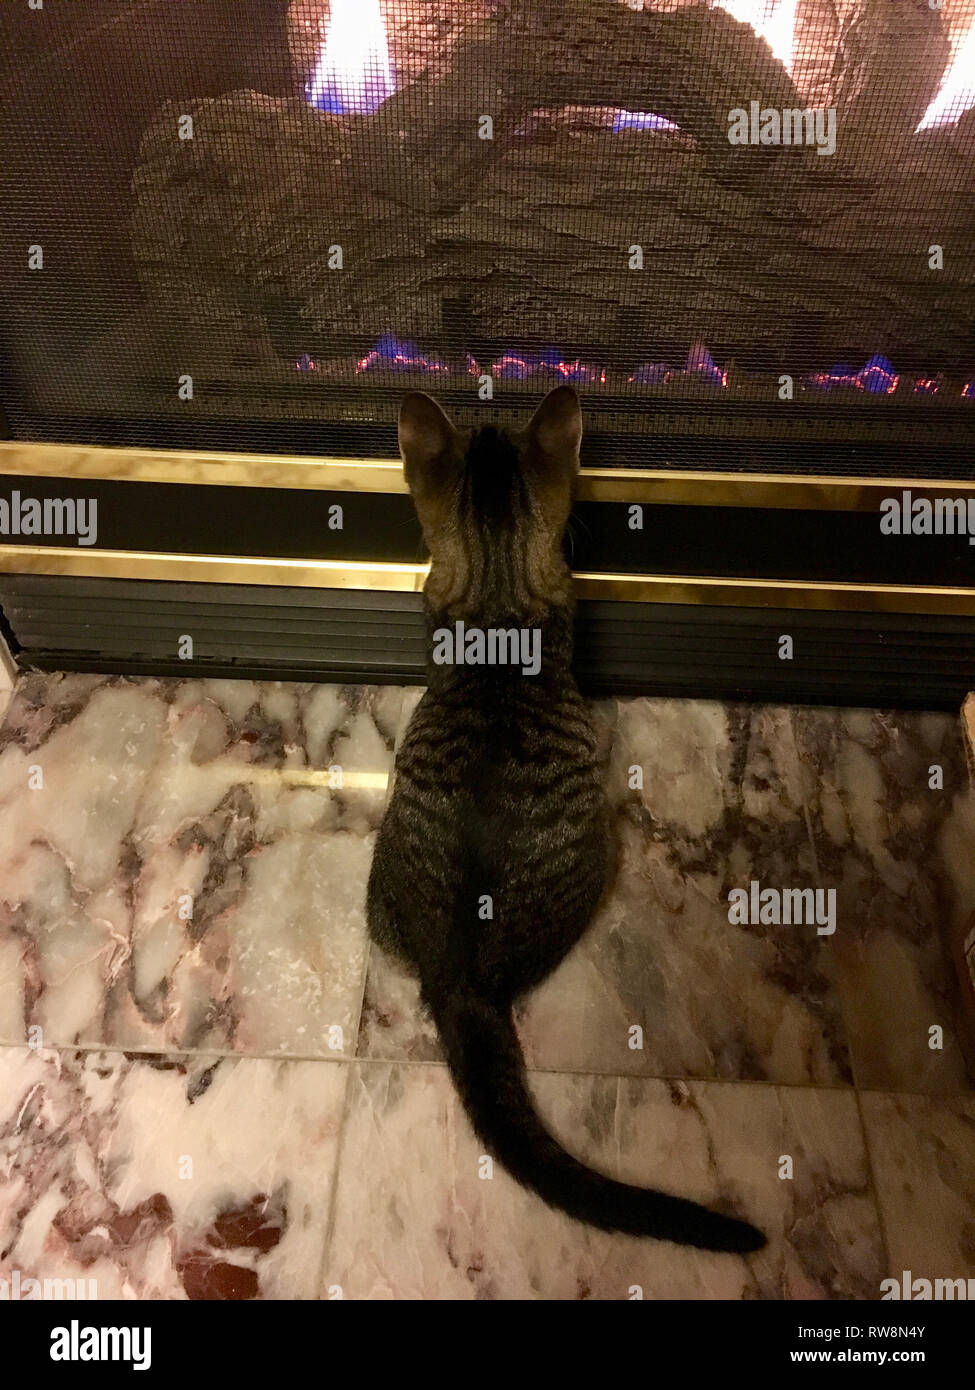 A young grey tabby cat looks at a fireplace for the first time Stock Photo